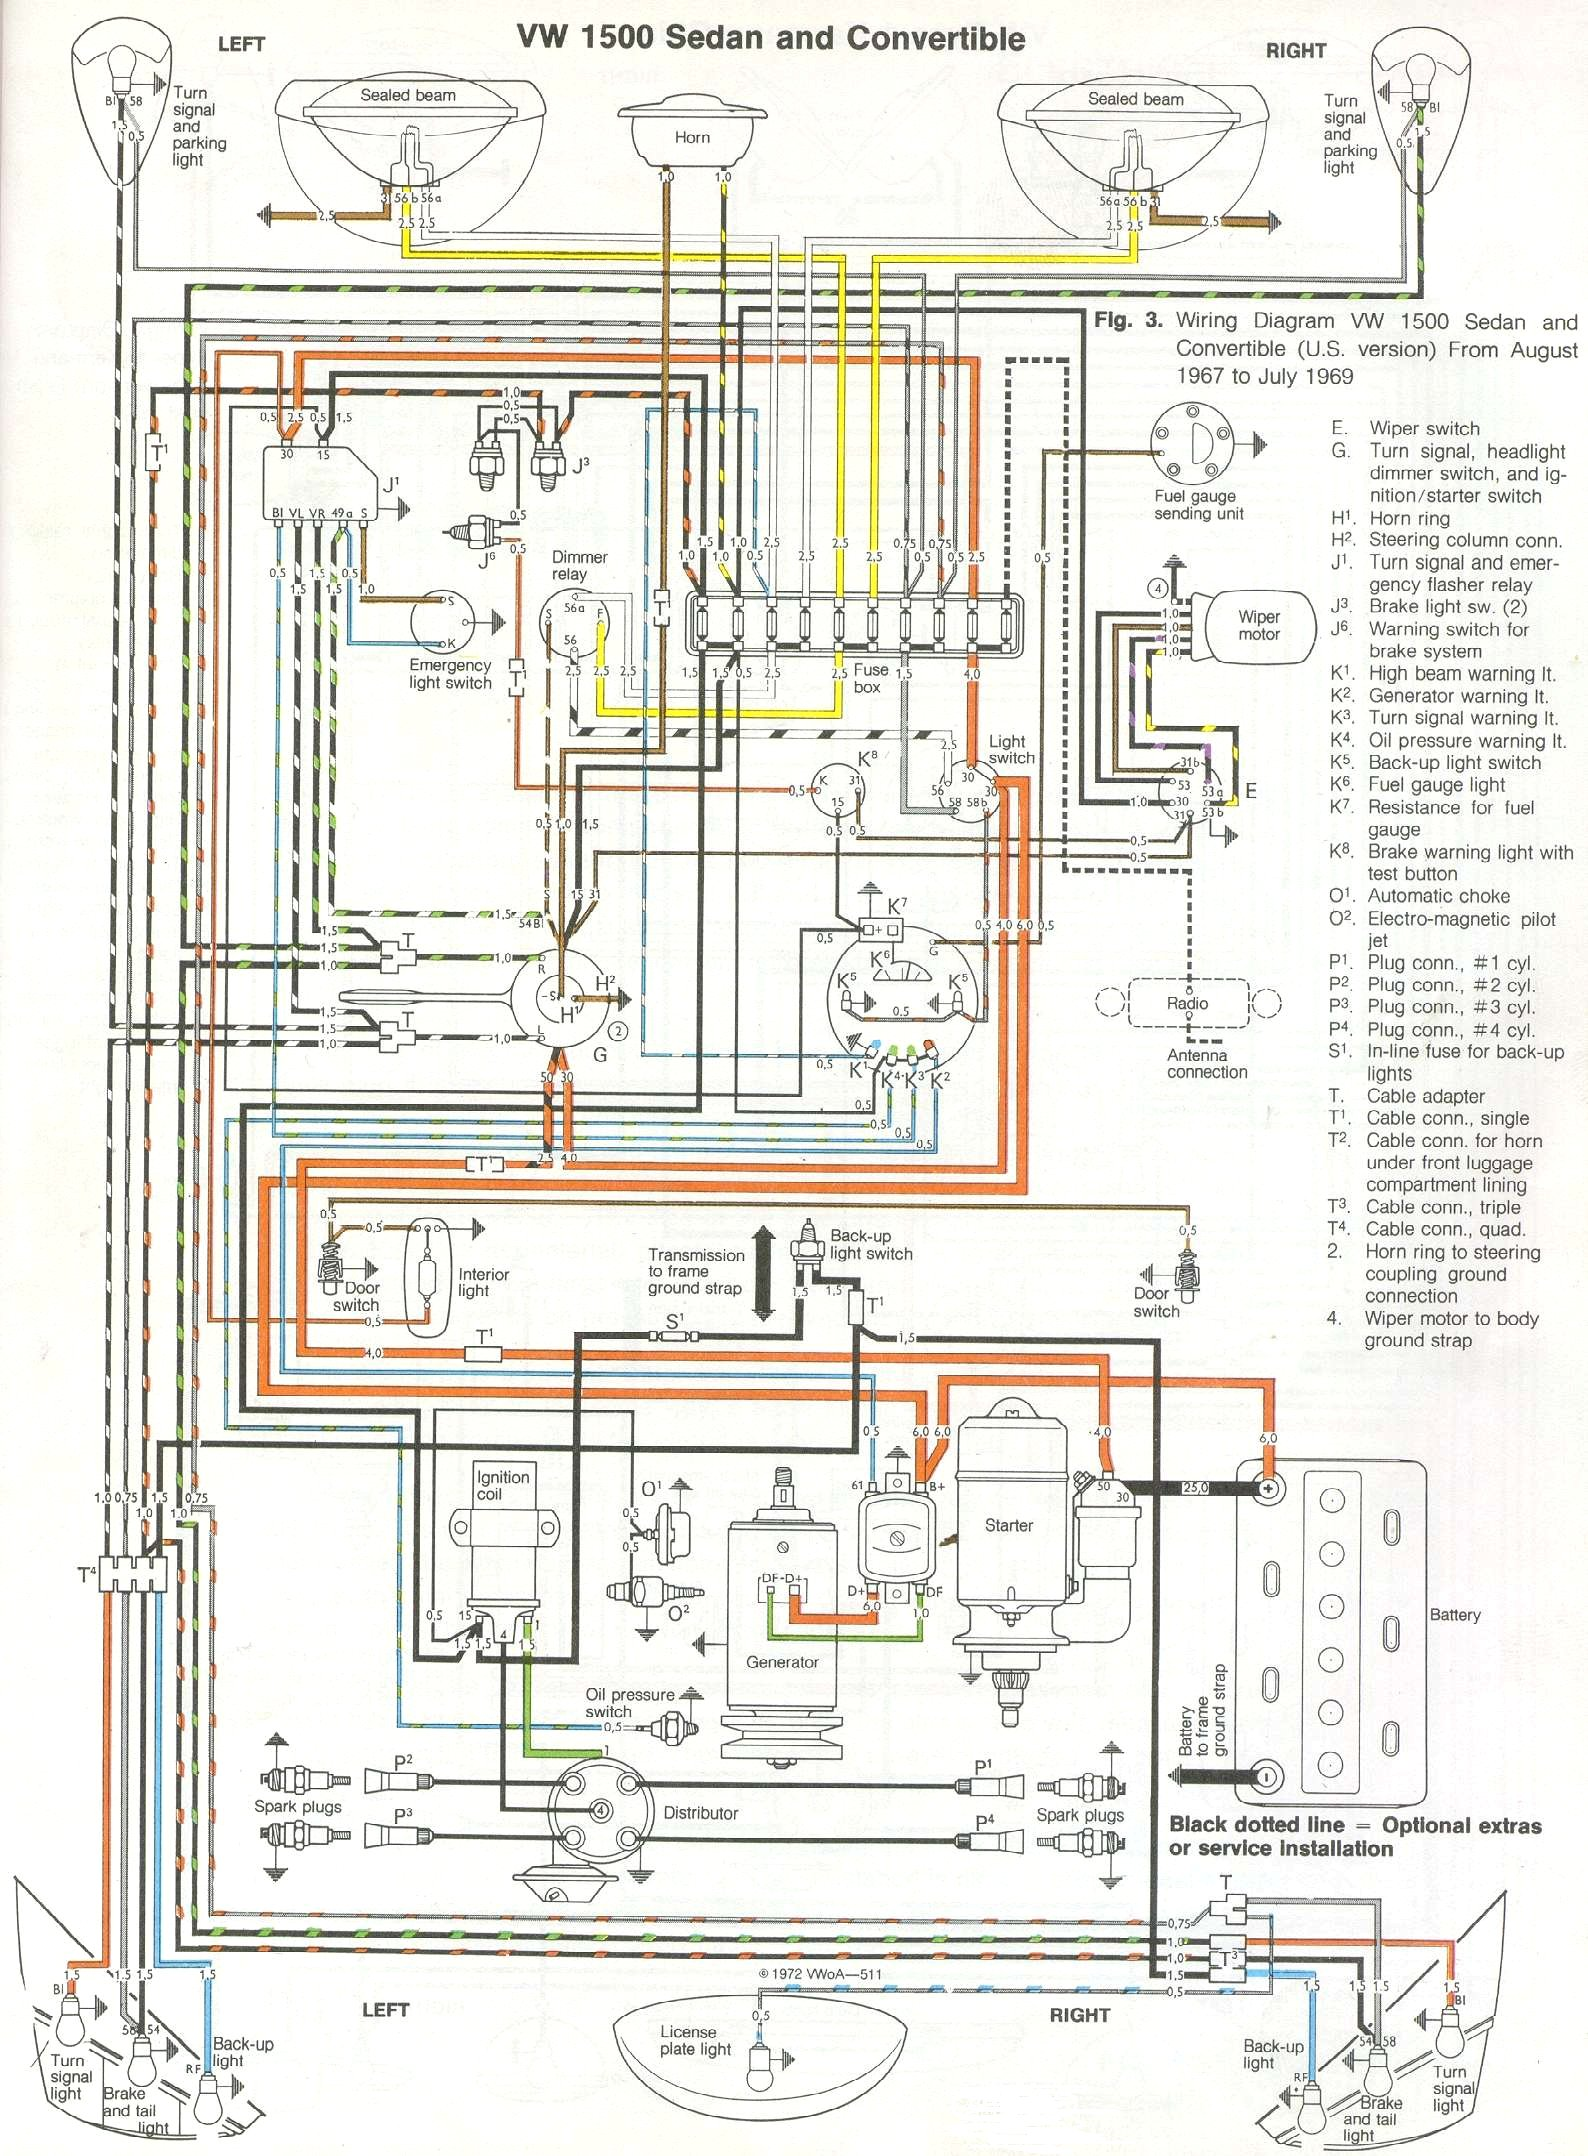 bug_6869 1969 71 beetle wiring diagram thegoldenbug com vw wiring diagrams at couponss.co